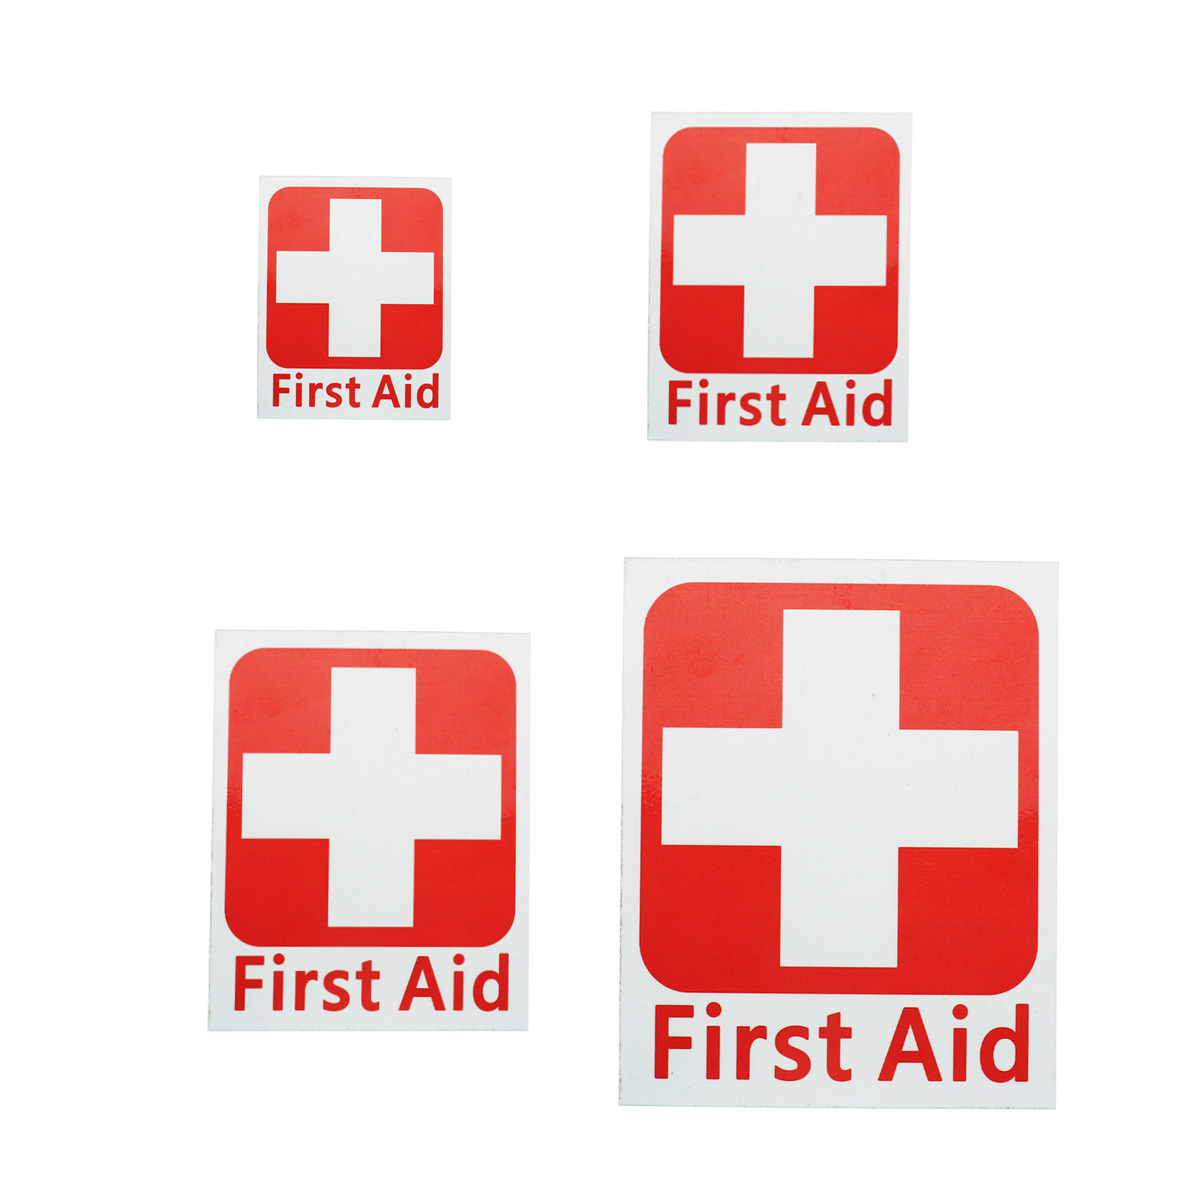 NEW 4 Size FIRST AID Vinyl Sticker Label Waterproof Signs Red Cross Health Safety Emergency Kits Warning